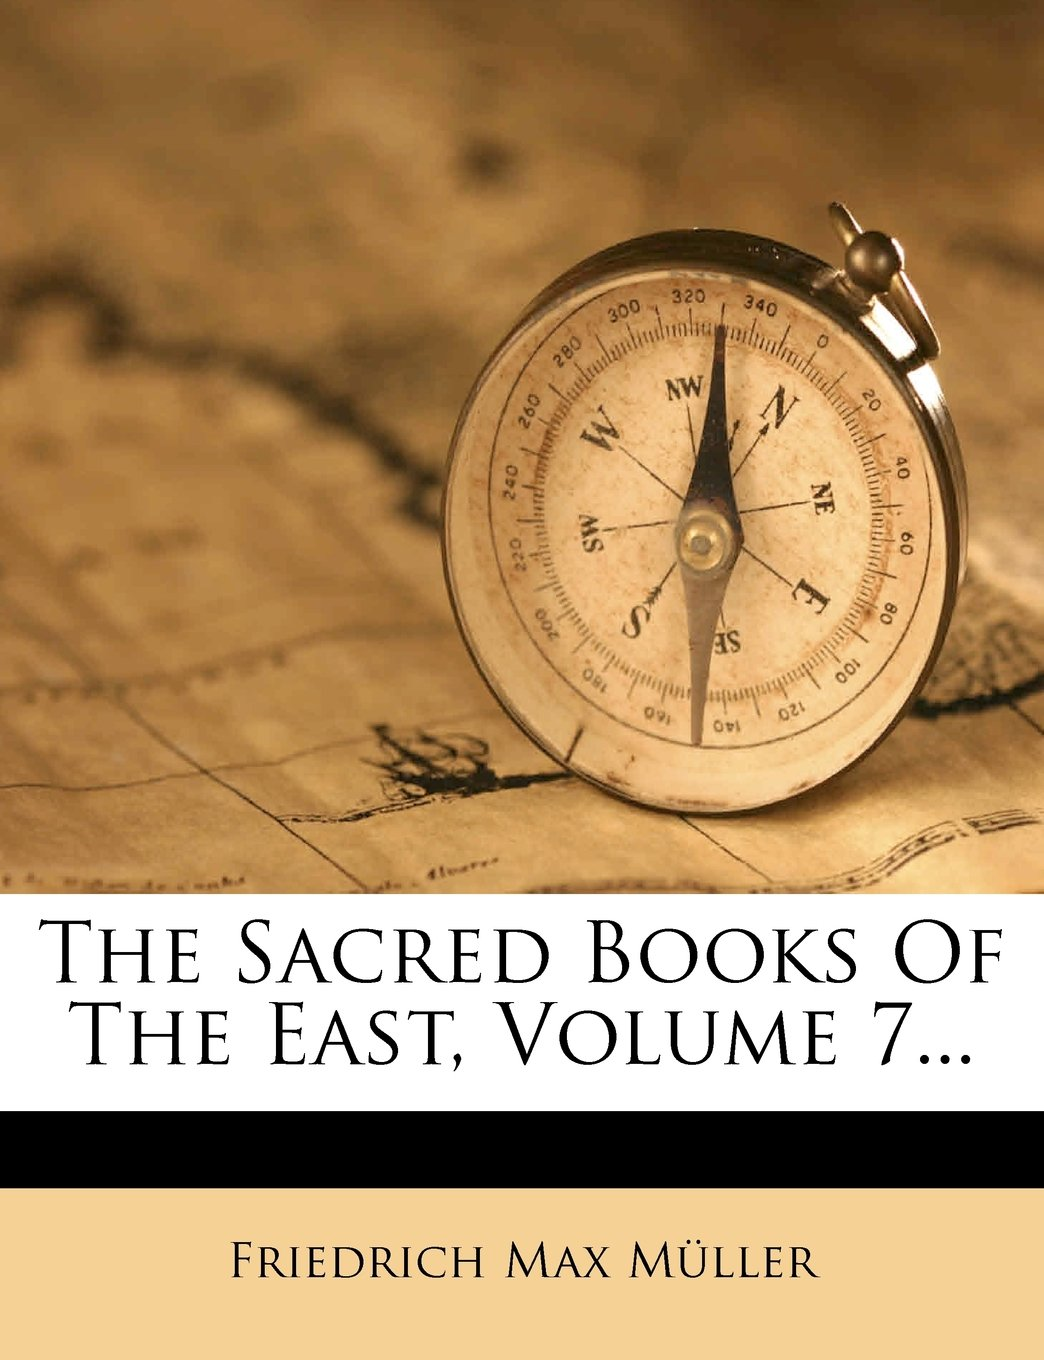 The Sacred Books of the East, Volume 7... ebook